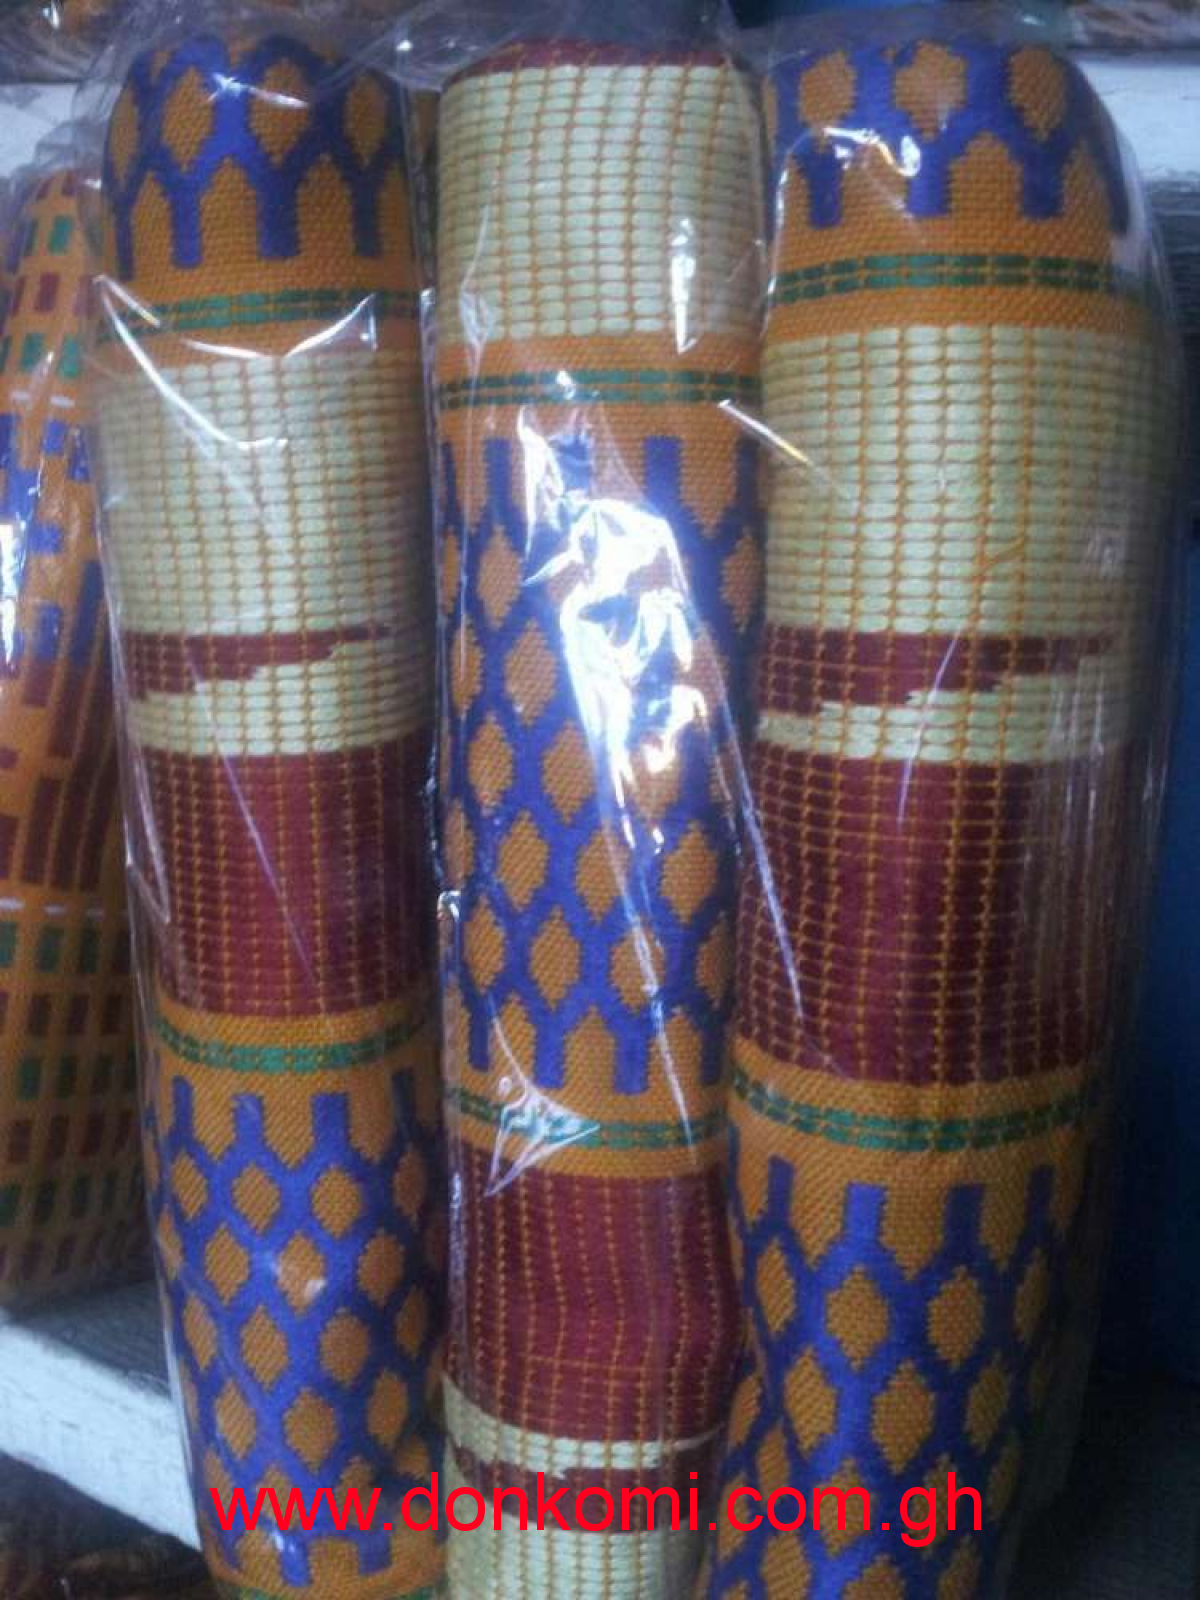 Buy kate from kate home for your traditional wedding